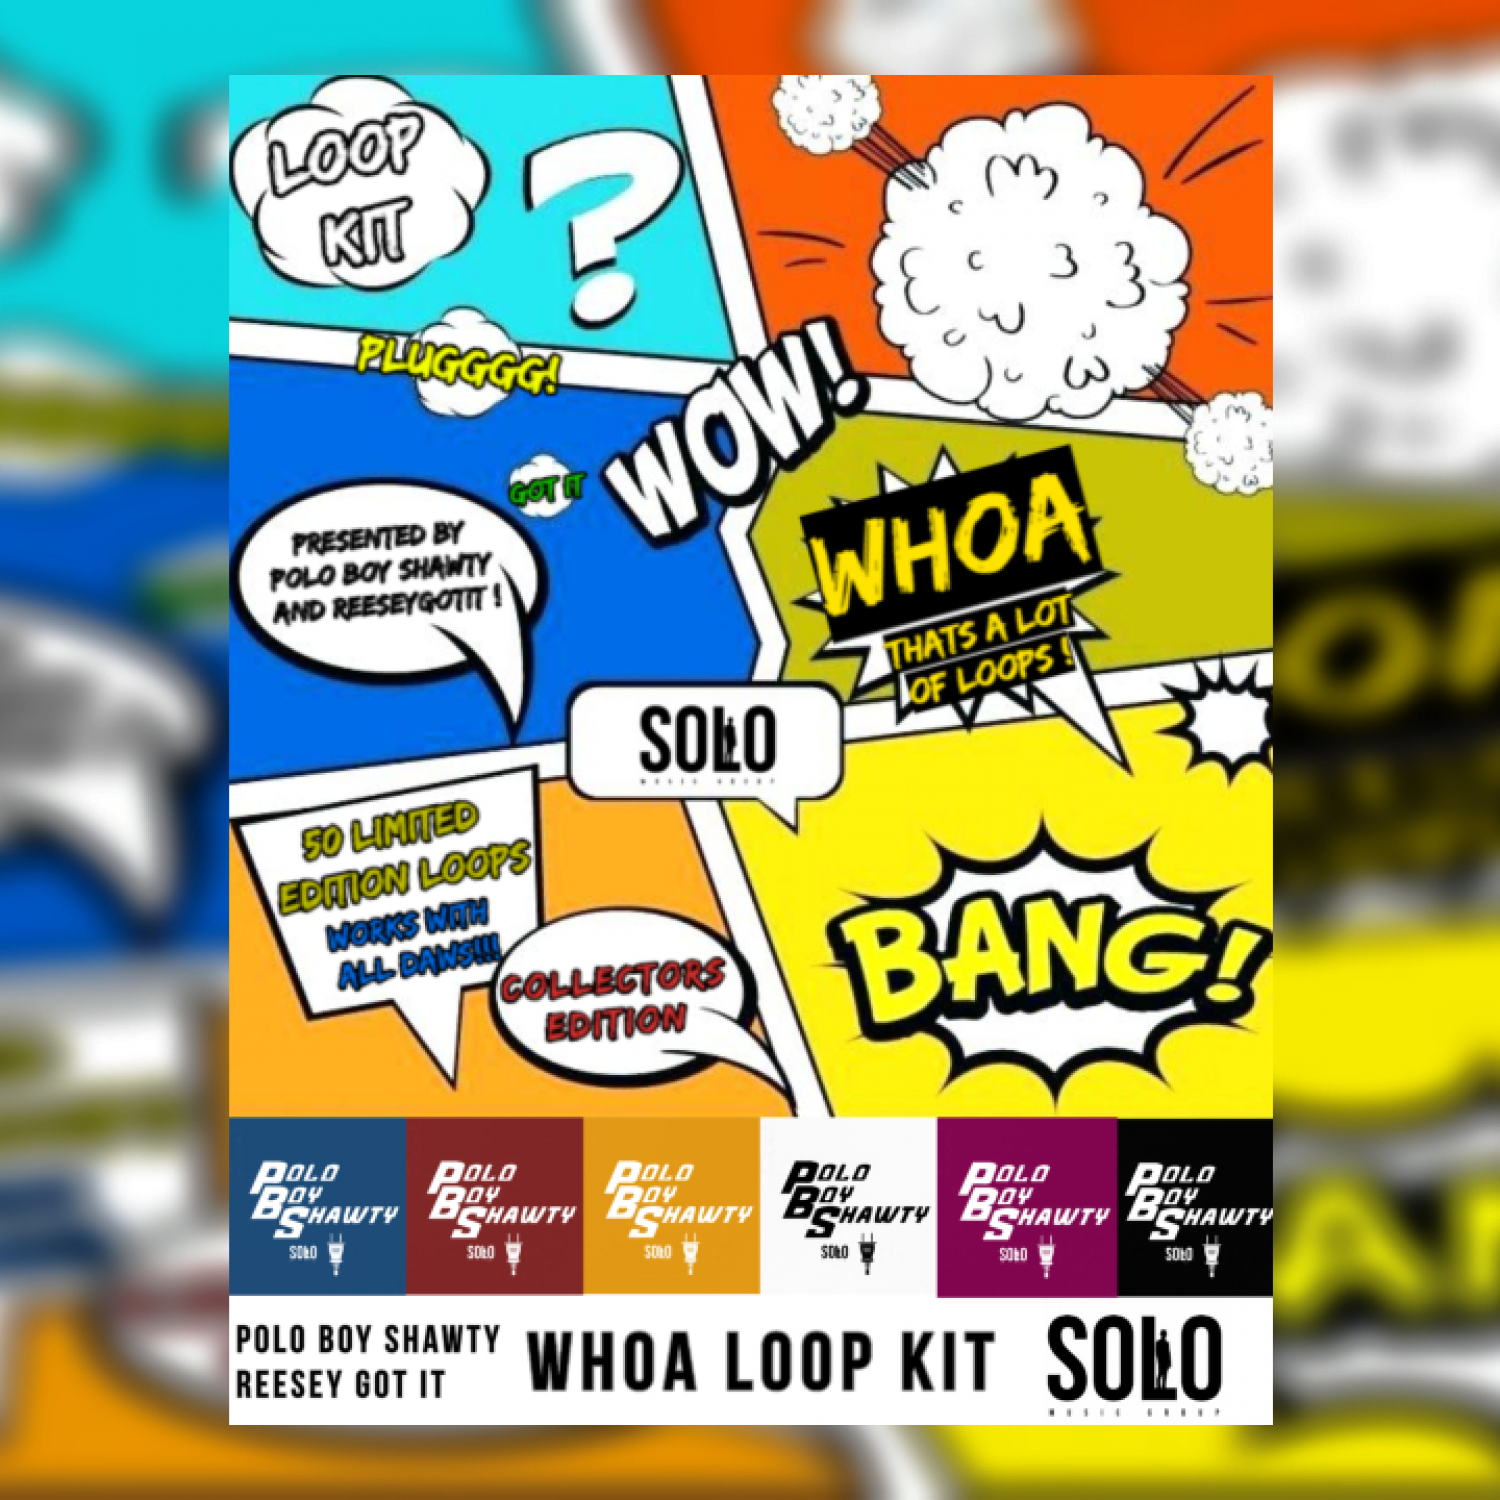 Whoa Thats A Lot Of Loops! (Loop Kit) by Polo Boy Shawty